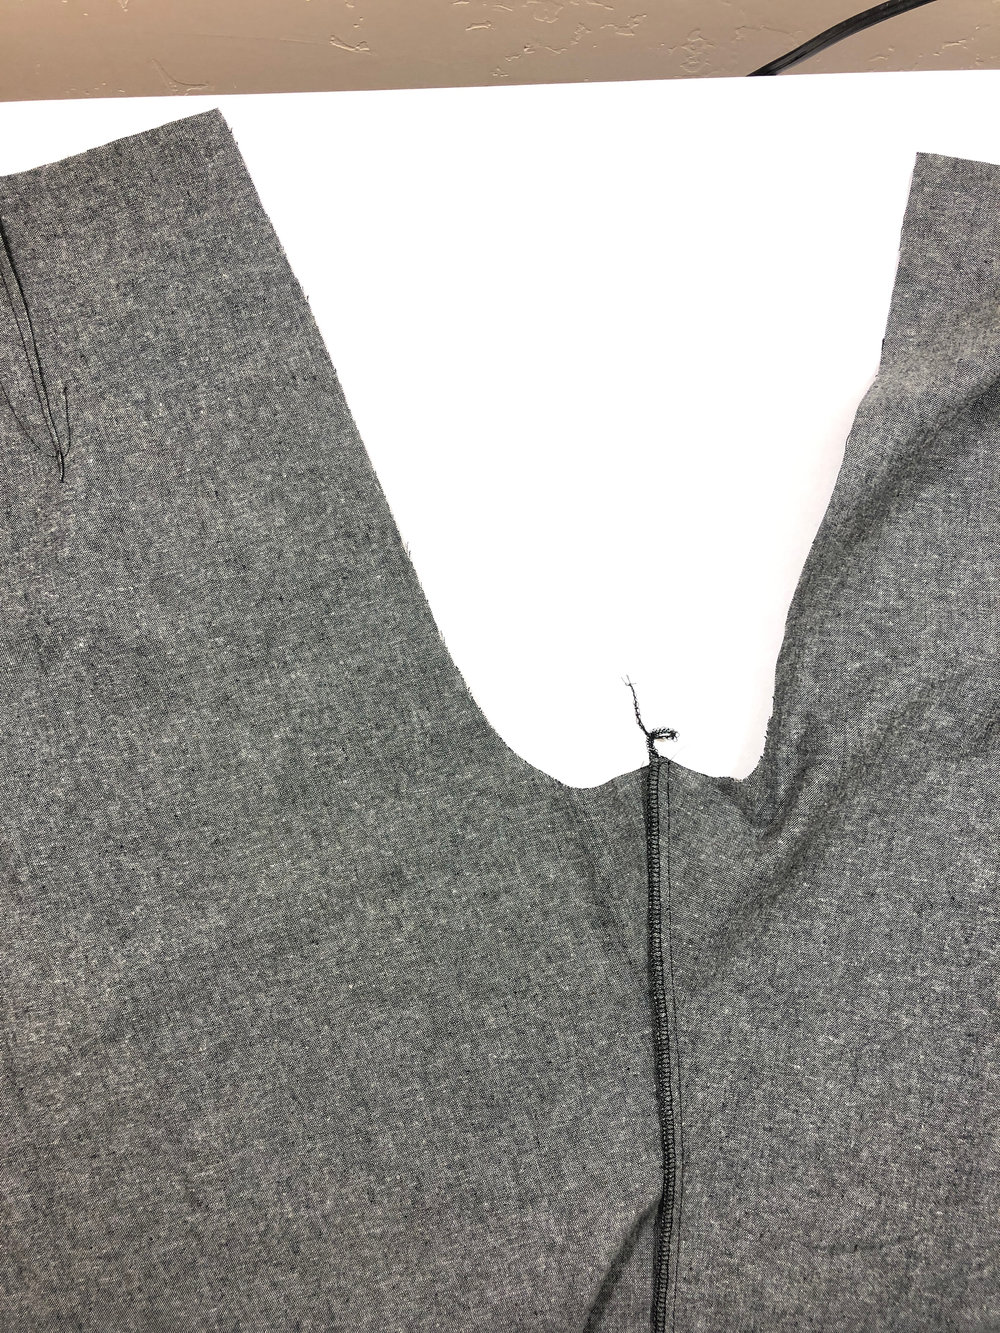 2. Serge/finish this seam, and press it towards the back pant leg.